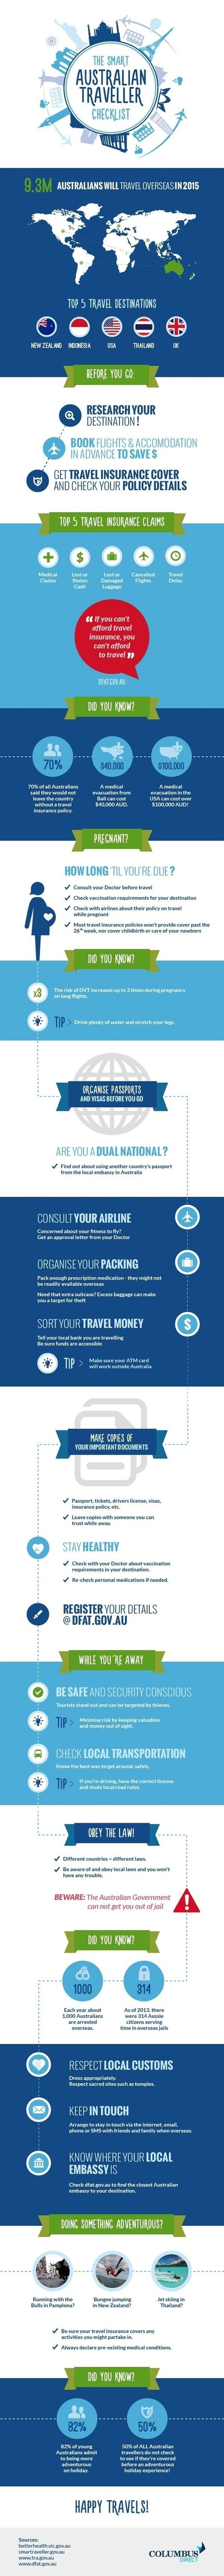 Trip Planning Checklist for Smart Travelers | The Best Infographics | Scoop.it